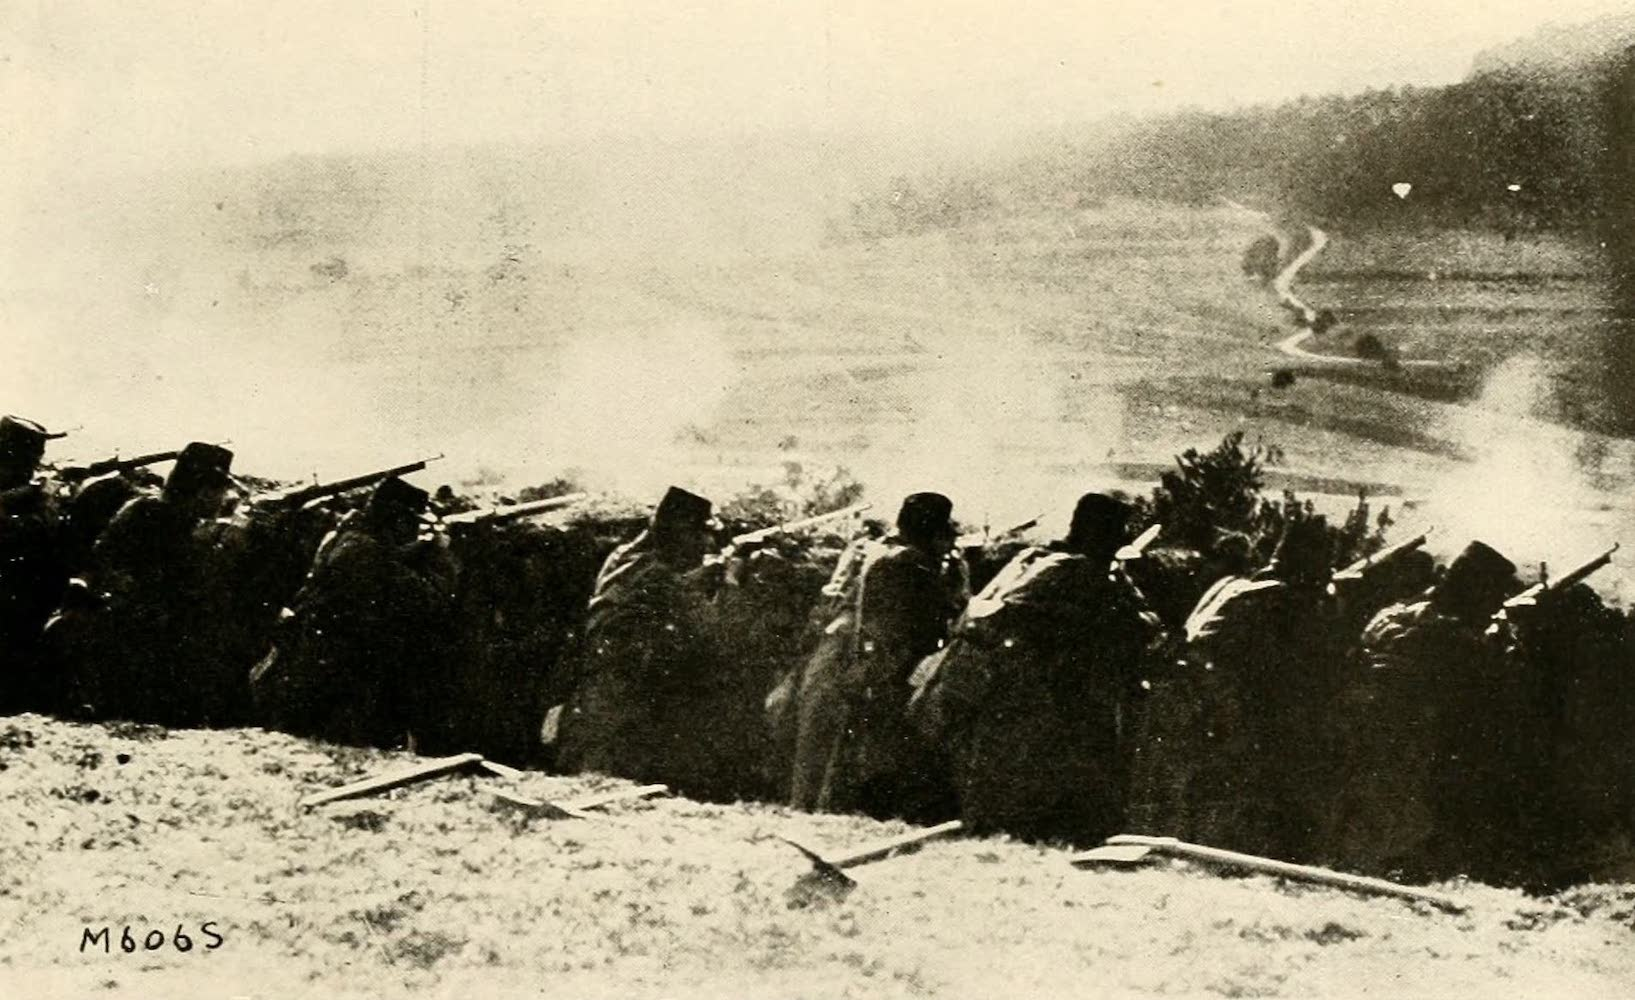 Laird & Lee's World's War Glimpses - French Infantry Directing Gruelling Fire From Rapidly Dug Trenches (1914)